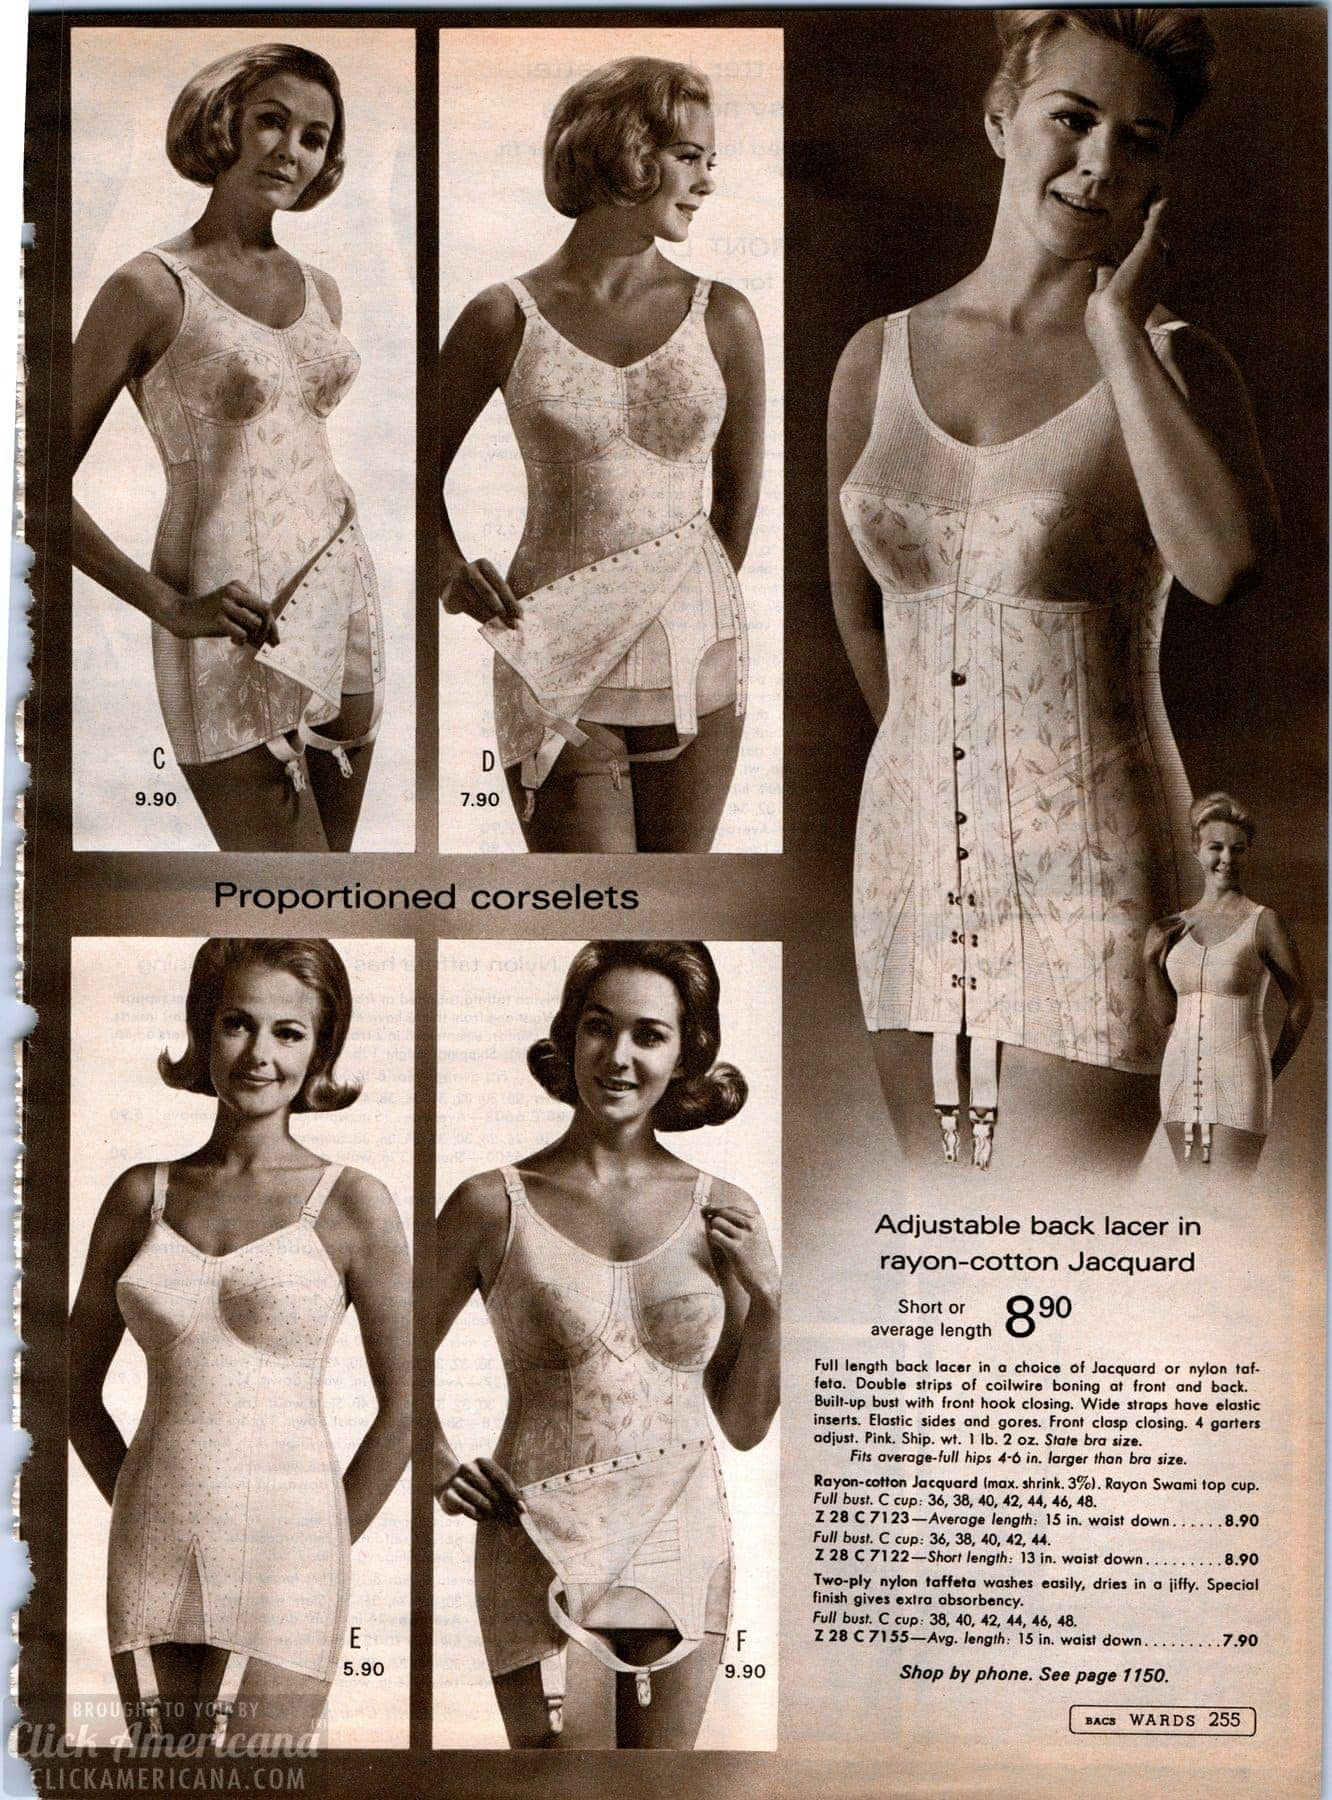 57da7638ccf Vintage corselets - body shapers from the  60s - Click Americana